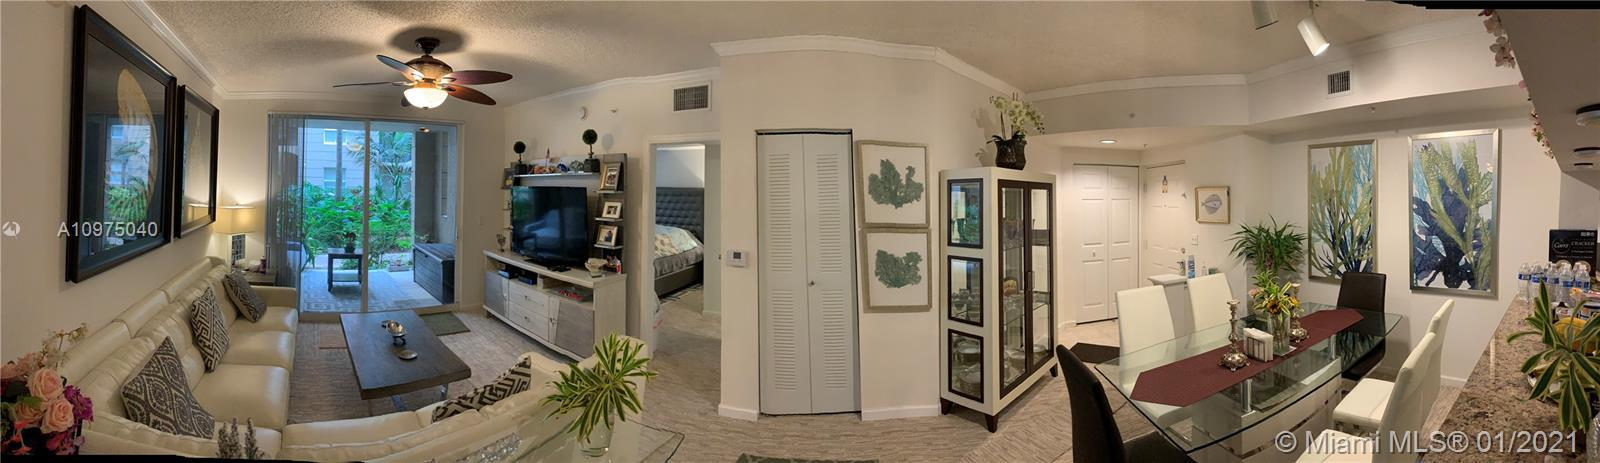 First Floor Beauty! Two bed +2 bath1024 ft.² Condo in the Heart of World-Renowned Sunny Isles Beach!